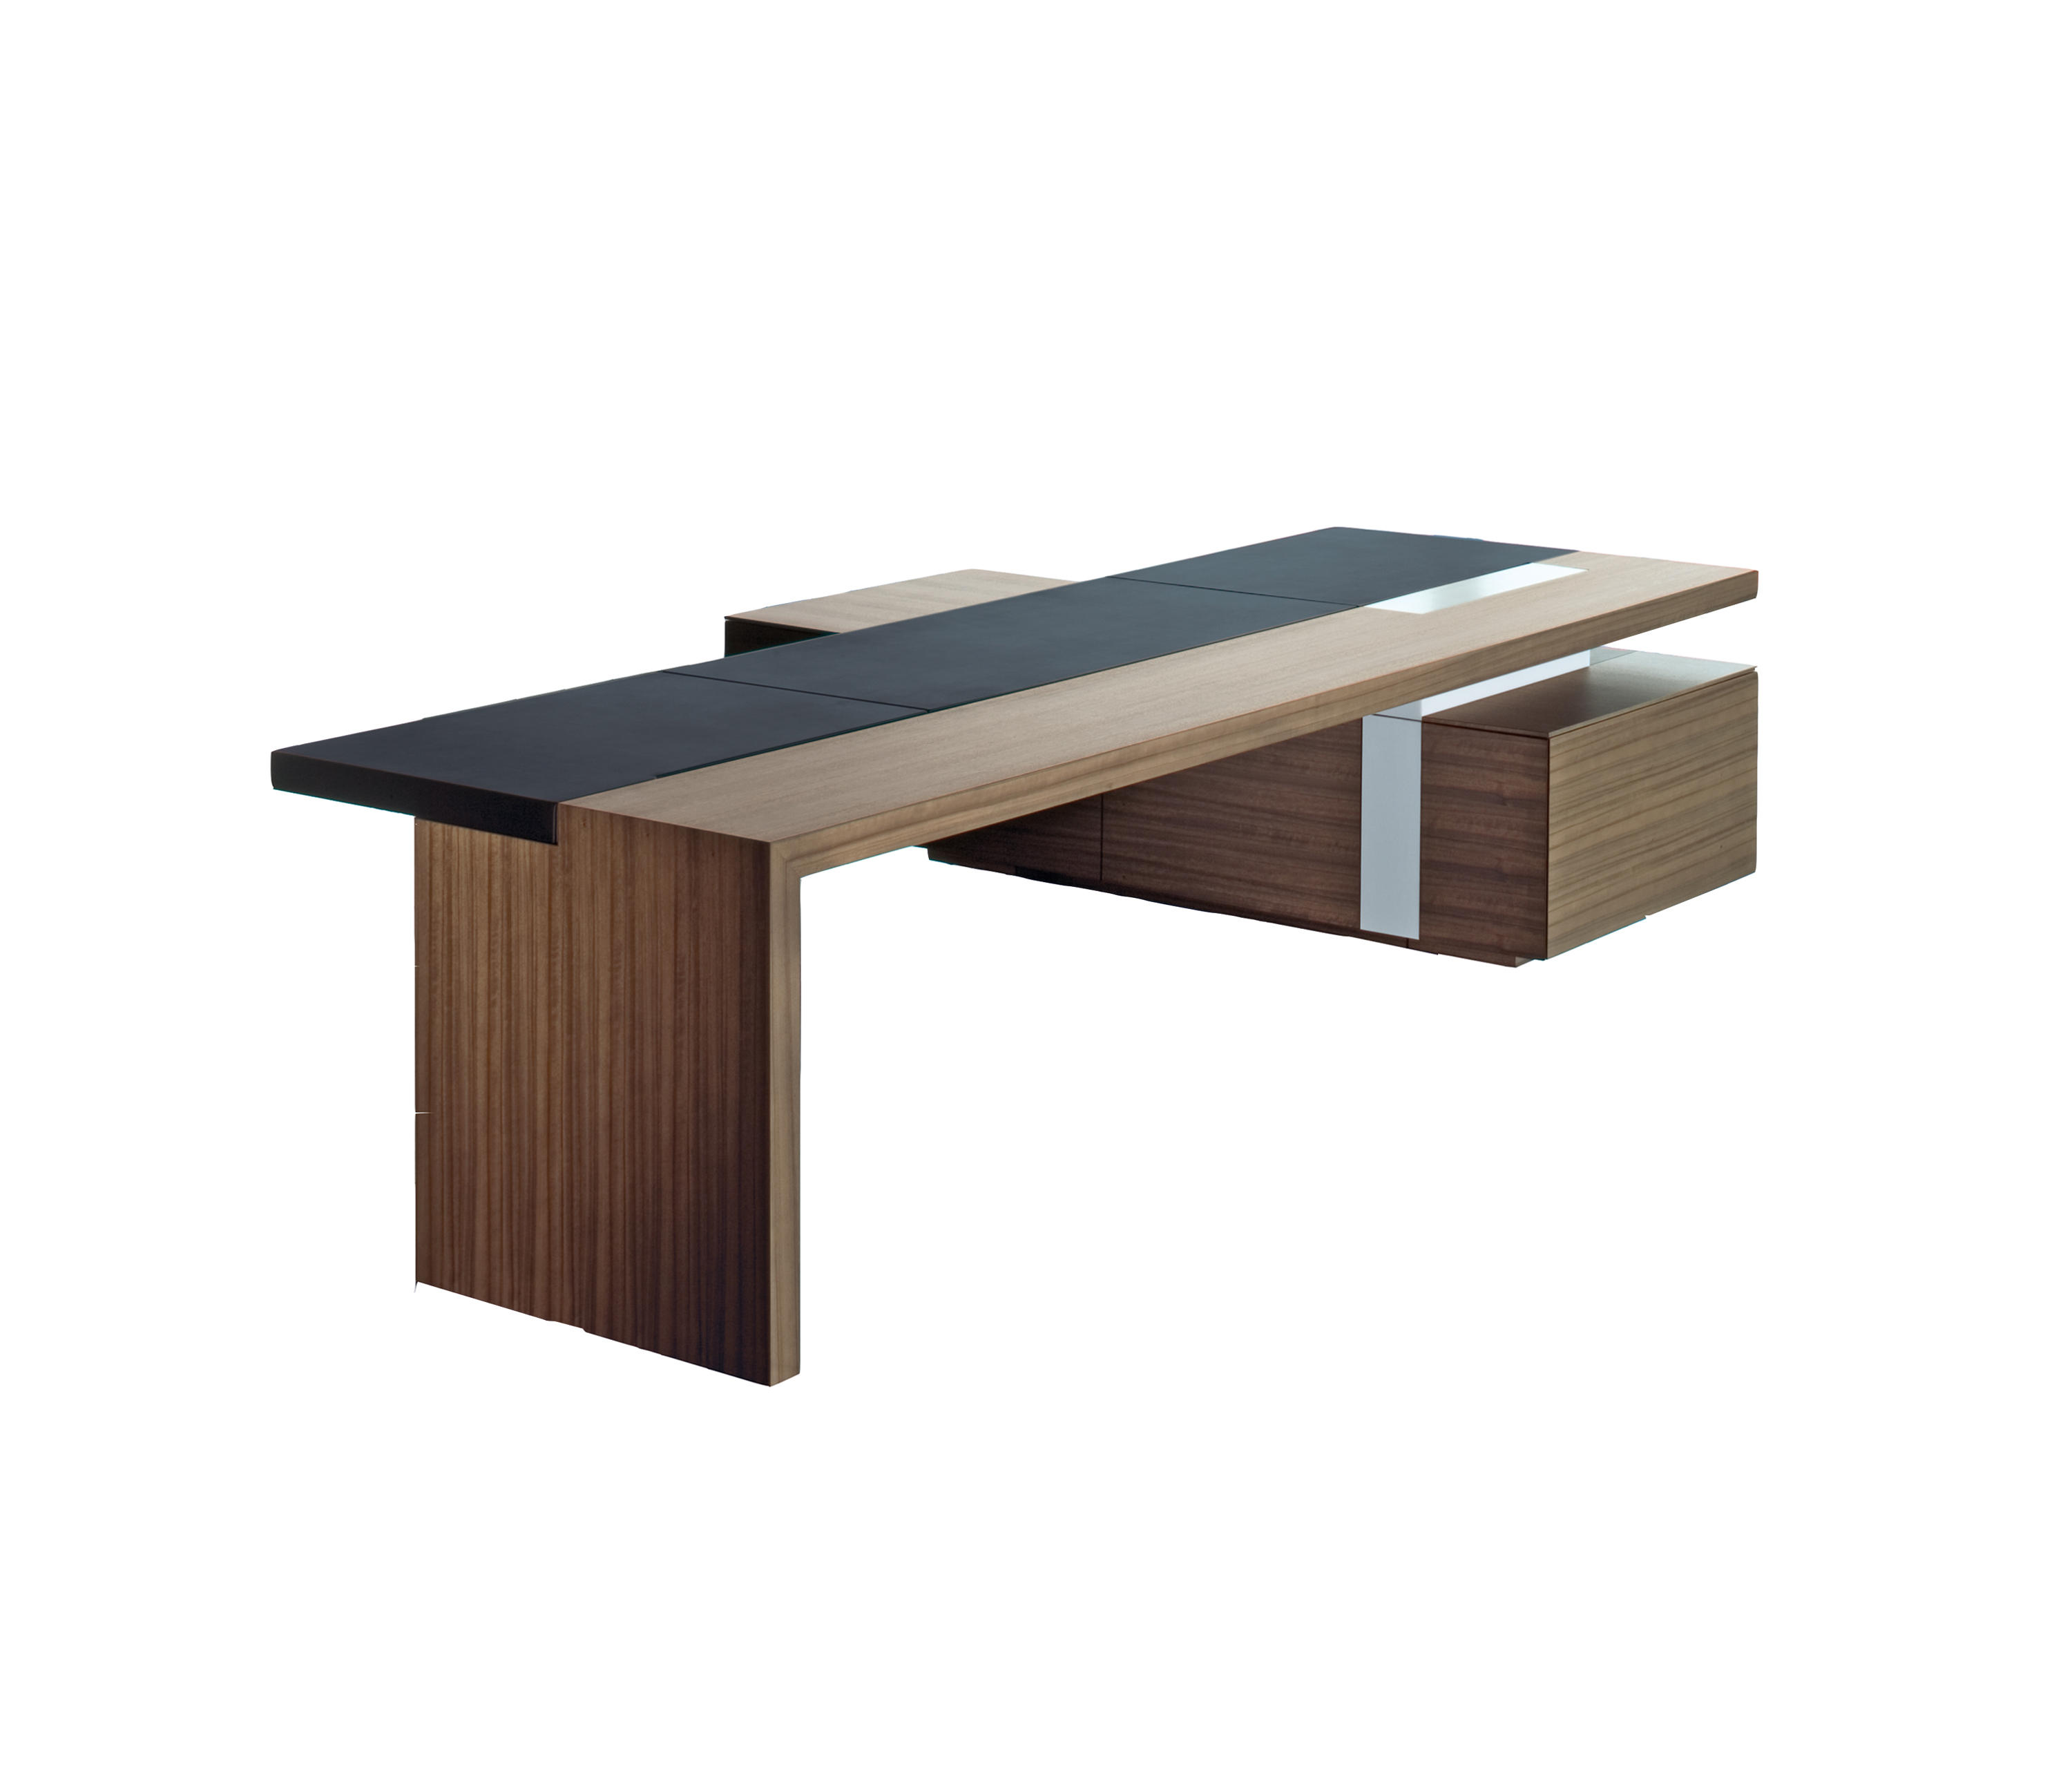 Ceoo Head Office Executive Desks From Walter Knoll